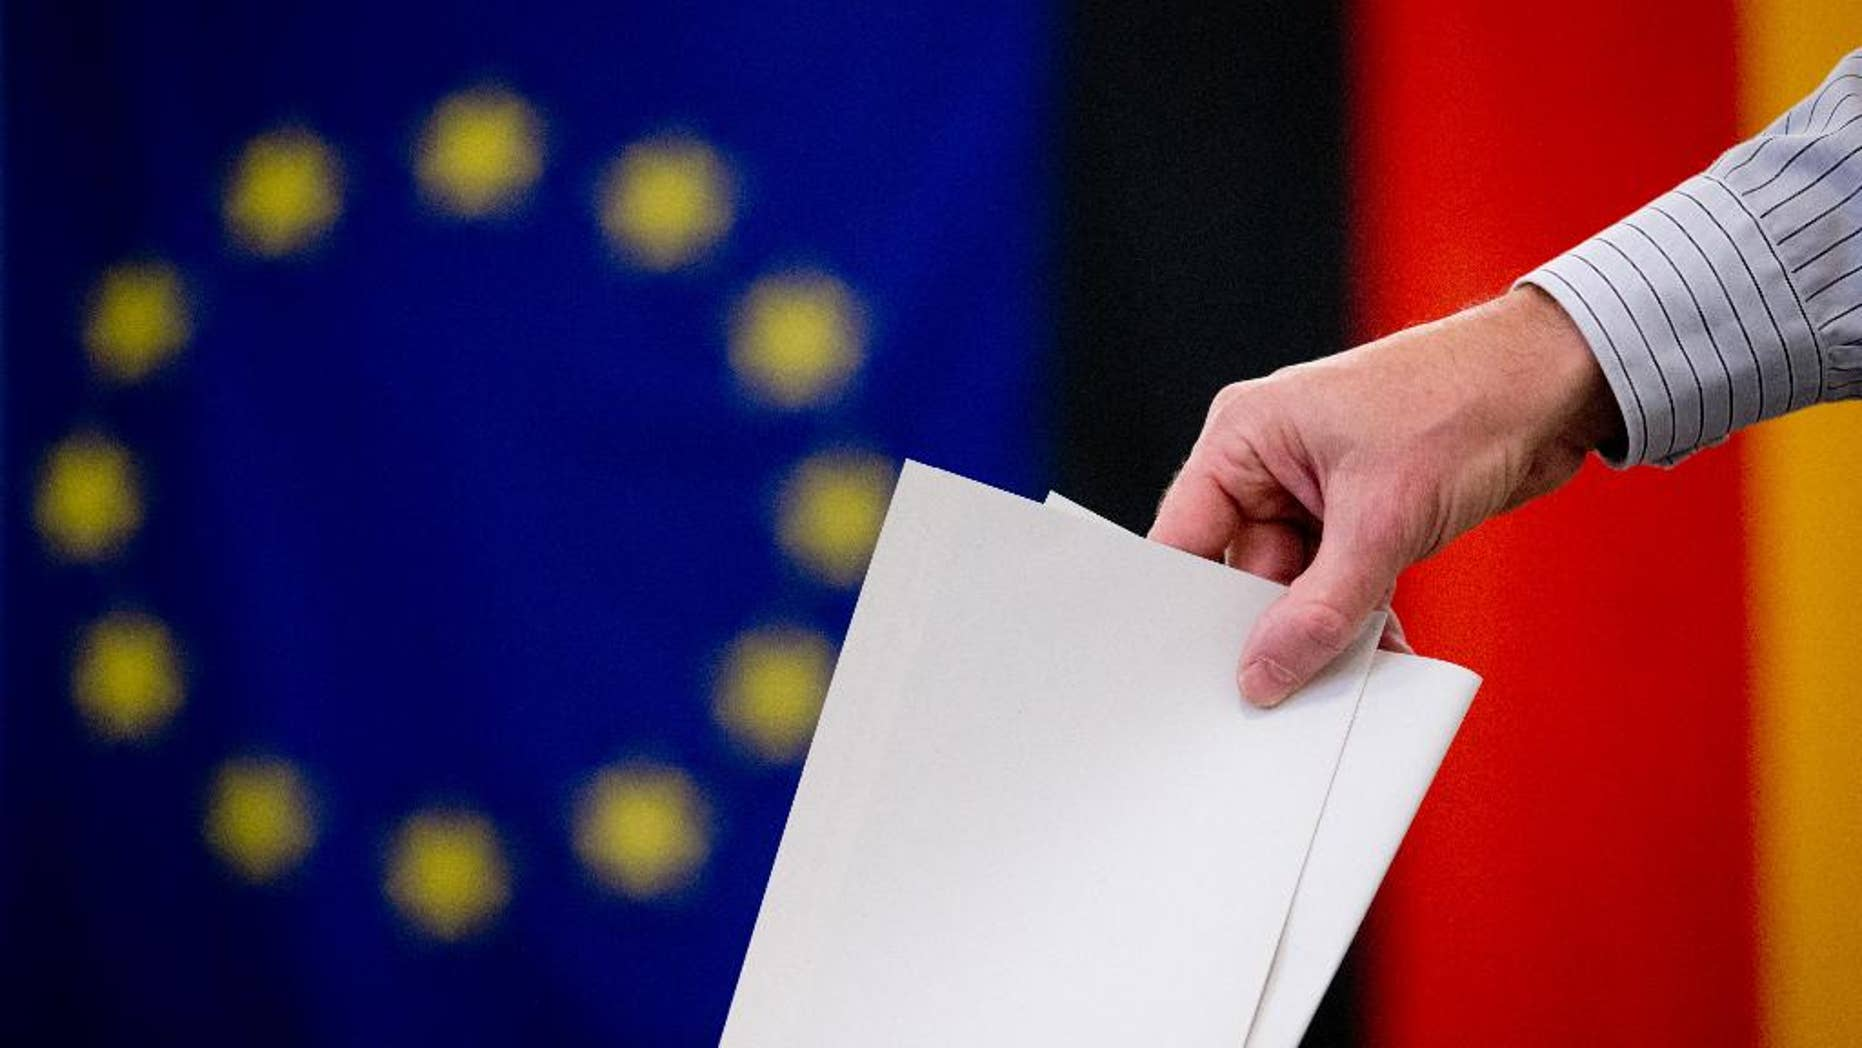 A man casts his ballot for the European elections and a local referendum on the Tempelhof field in a polling station in Berlin, Germany, on Sunday, May 25, 2014. (AP Photo, dpa,Kay Nietfeld)